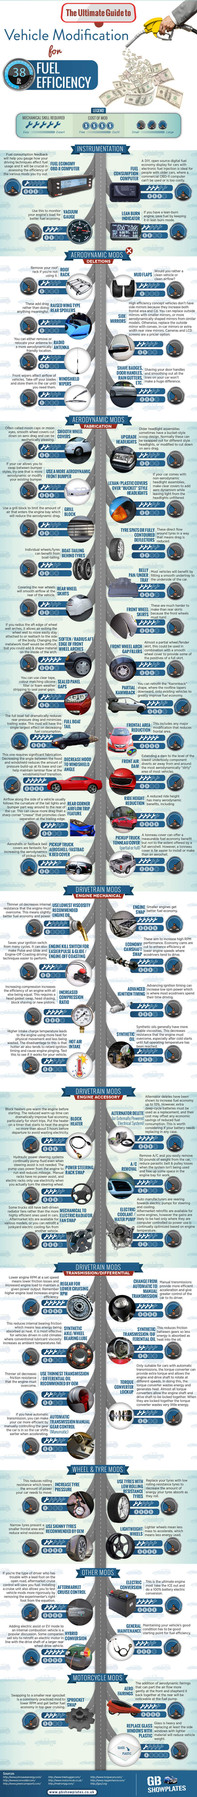 The Ultimate Guide to Vehicle Modification